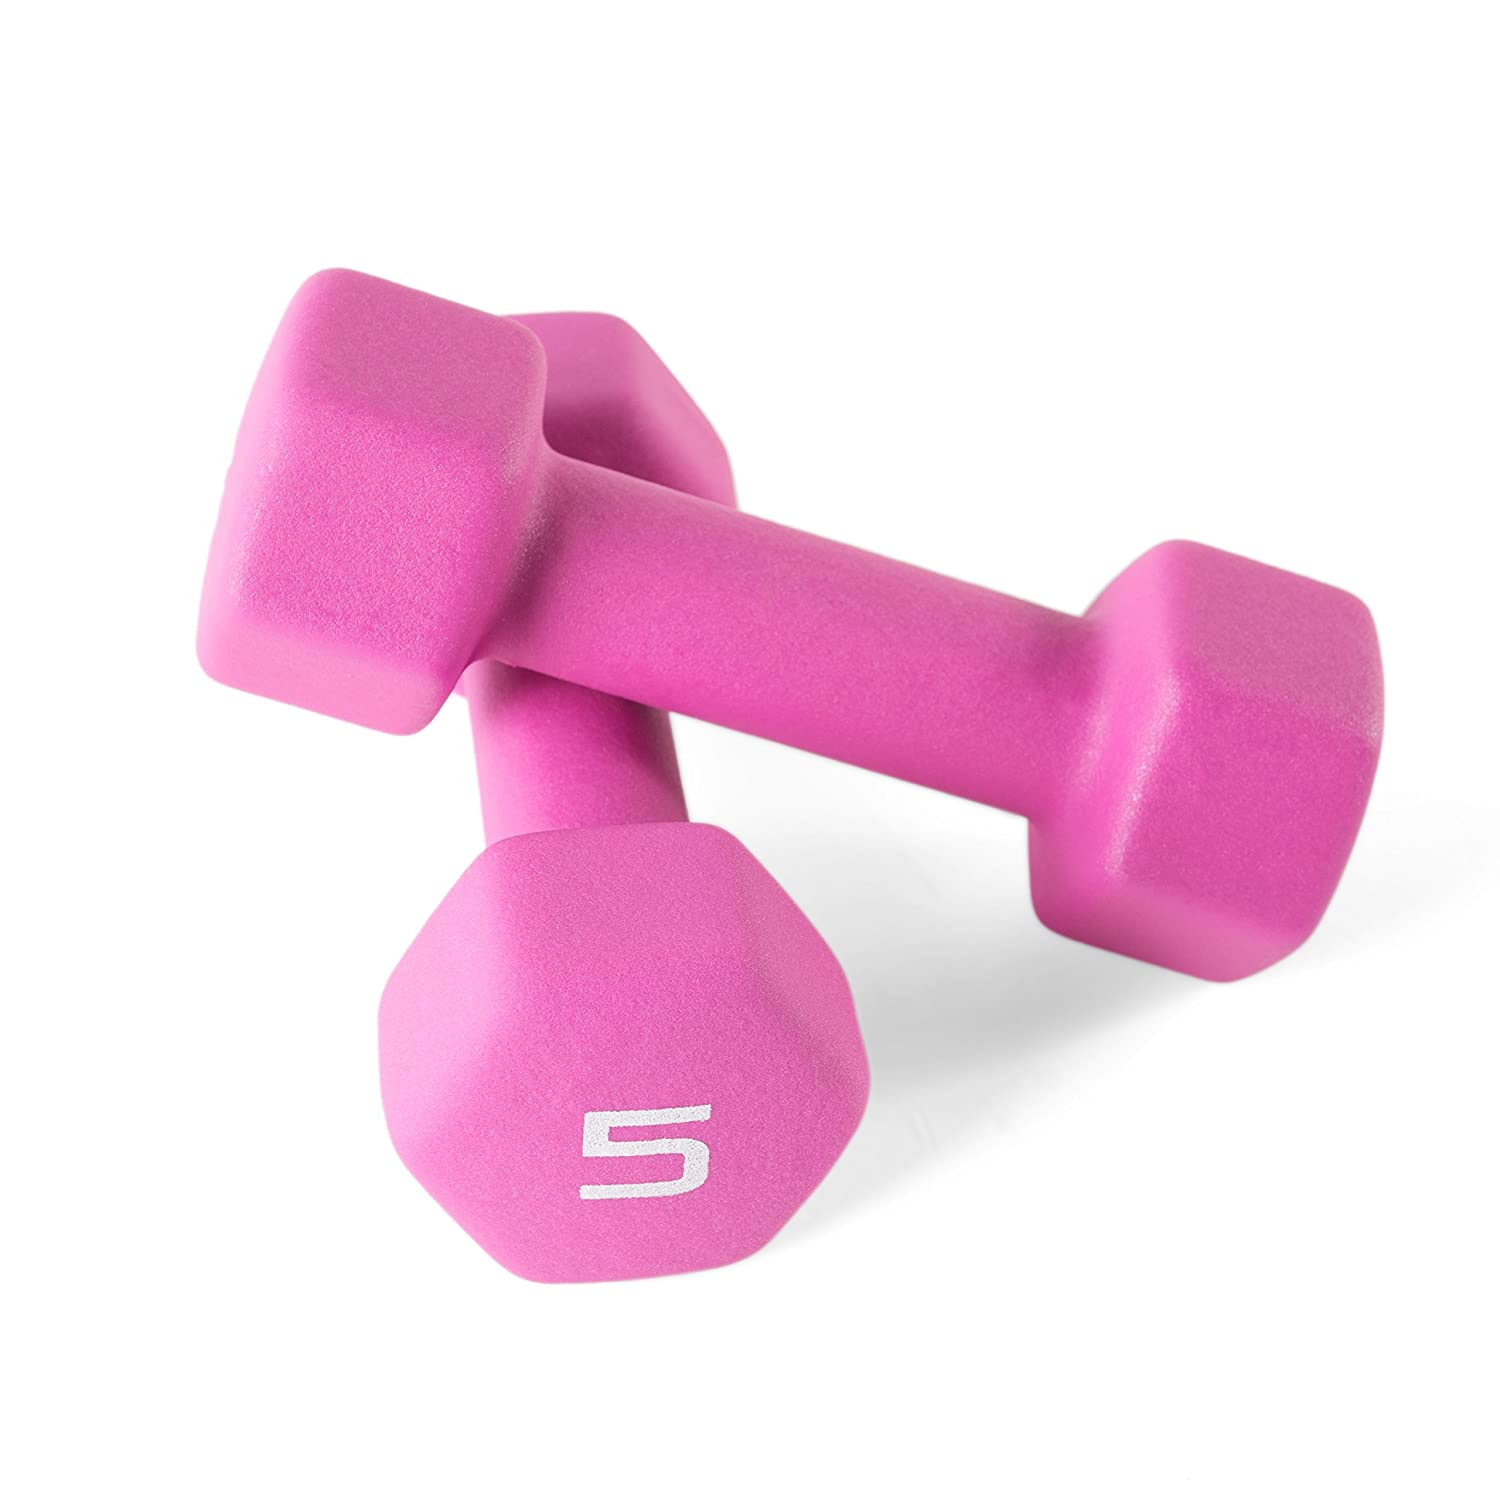 Light Dumbbell Set: 5 Pieces Of Workout Equipment For Women